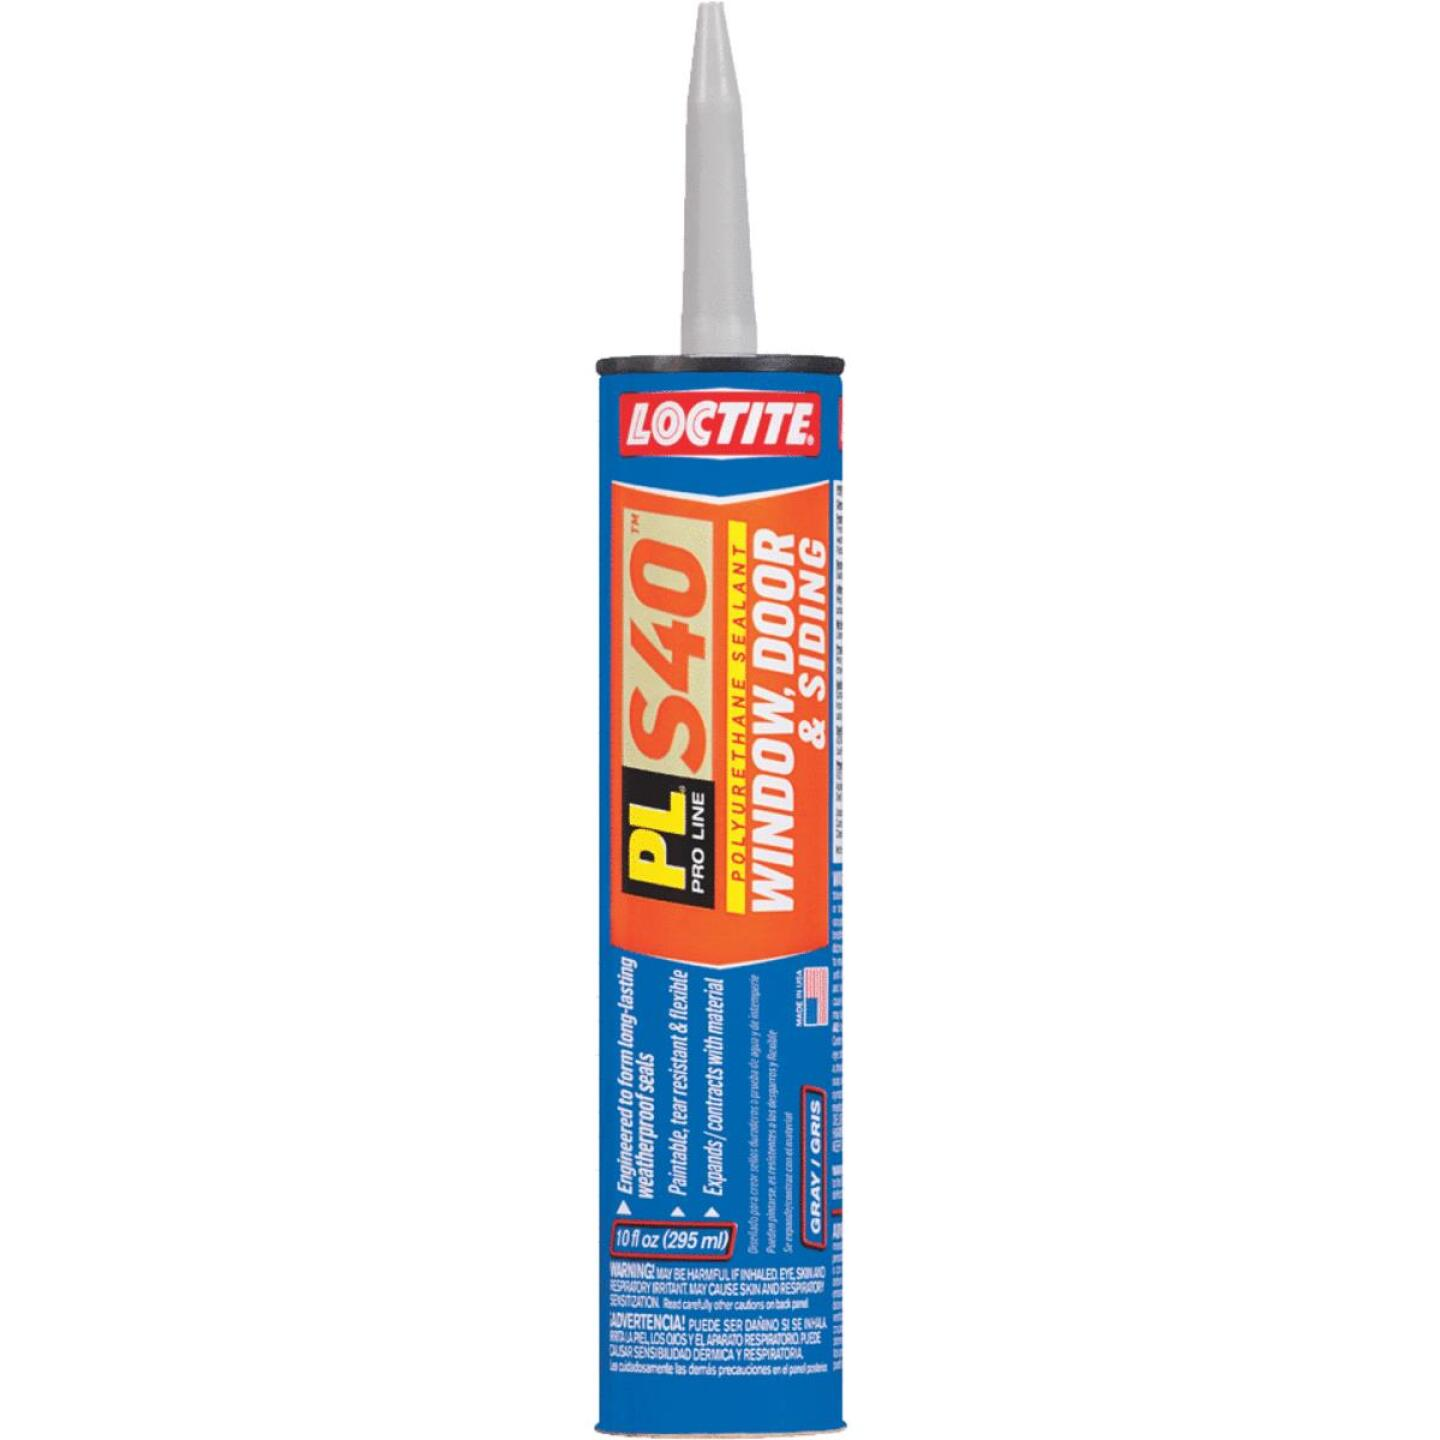 LOCTITE PL S40 10 Oz. Polyurethane Window, Door, & Siding Sealant, Gray Image 1